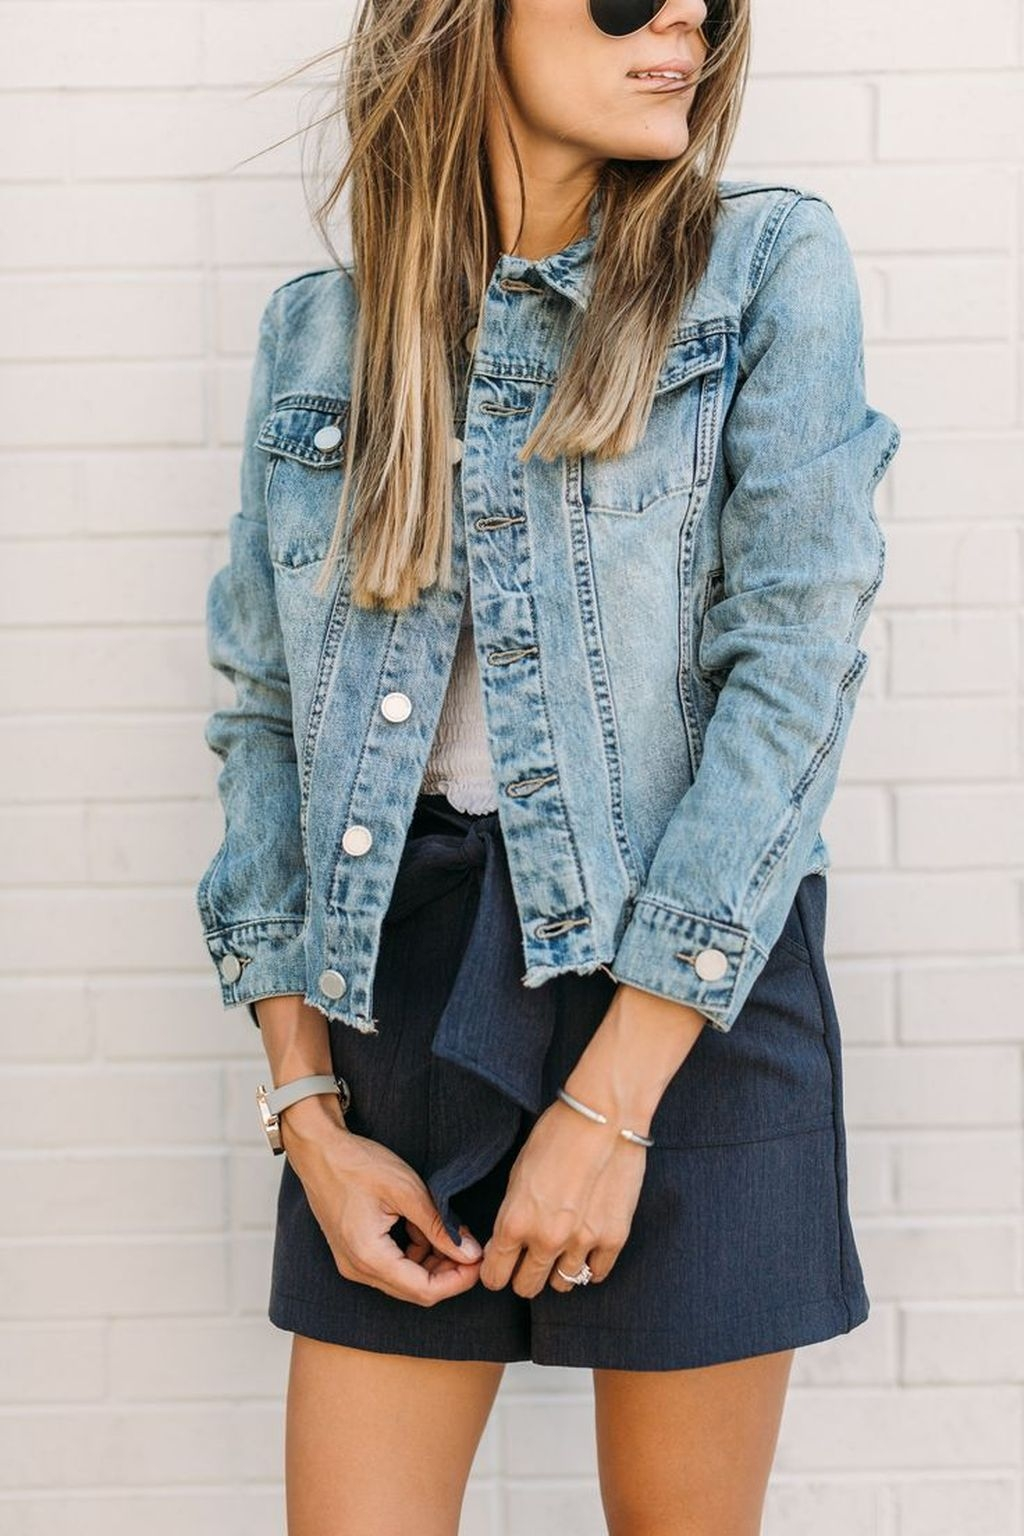 ... filter out the popular denim jackets and its popularity worldwide among those millions of fashion shoppers who are constantly hunting down those unique ... & Trend Fashionist: 46 Amazing Blue Jean Jacket Outfits Ideas for Spring